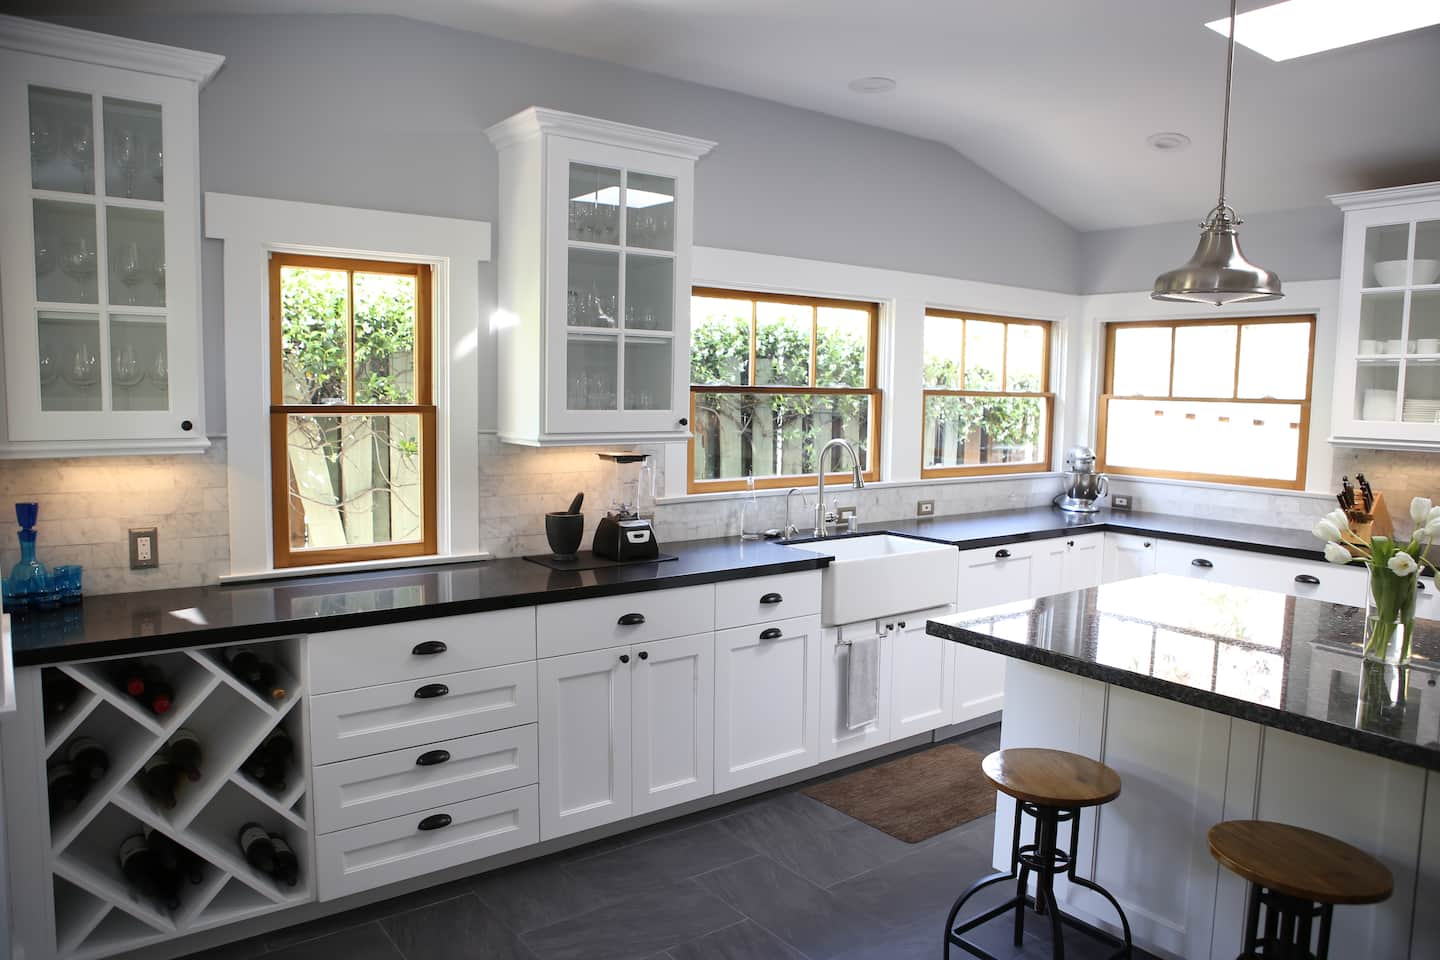 Refinished White Cabinets Cabinet Refacing And Refinishing Trends For 2016 Angies List